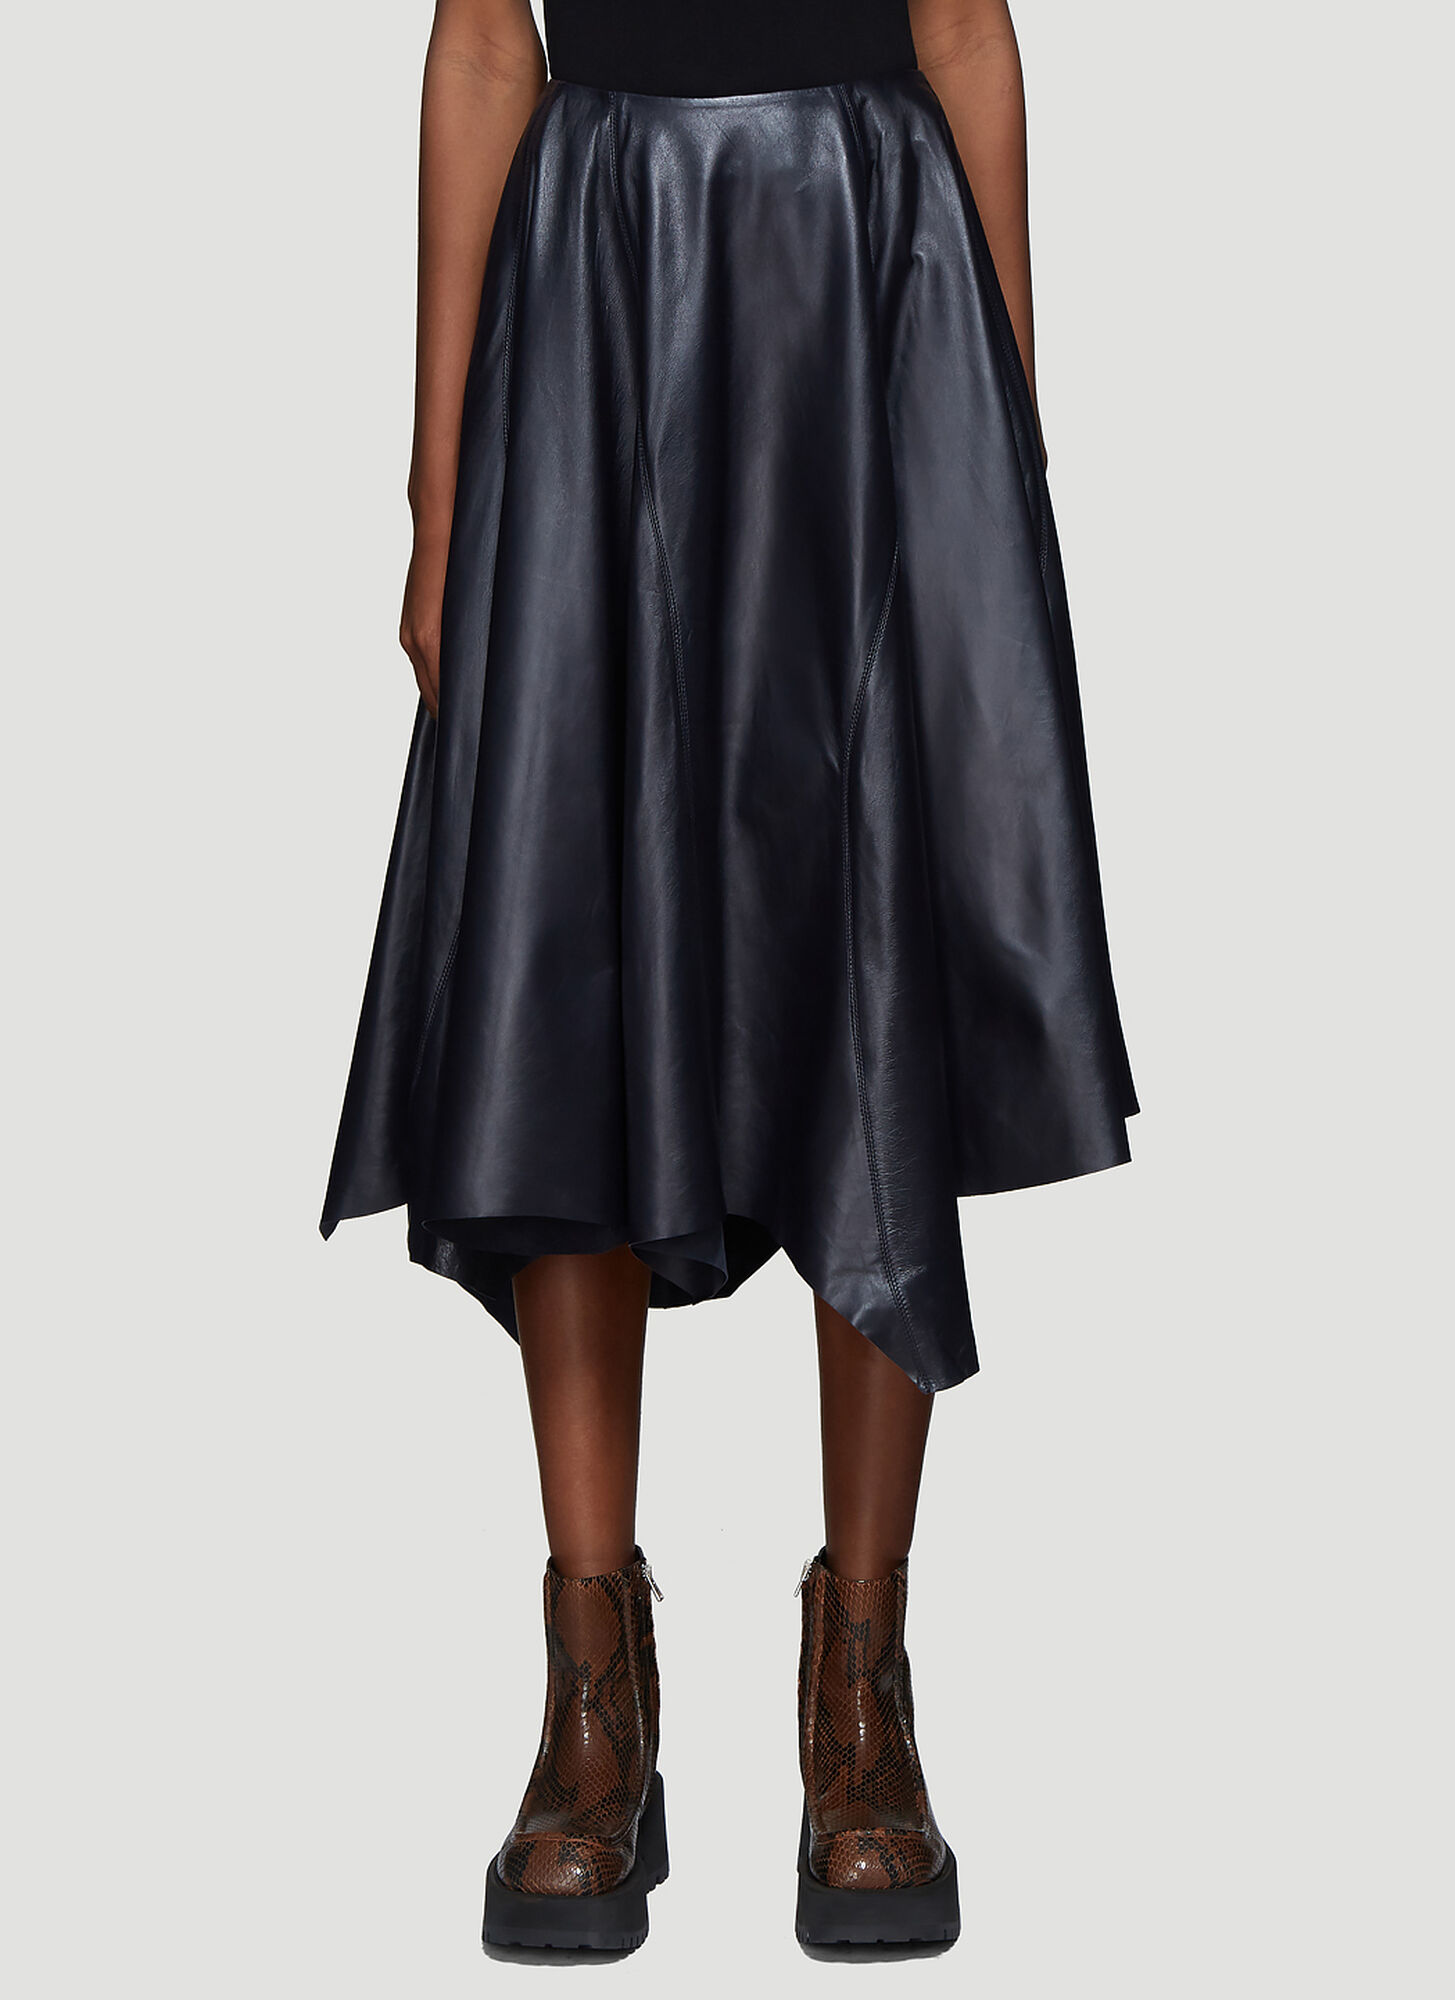 Photo of Marni Asymmetric Hem Leather Skirt in Navy - Marni Skirts